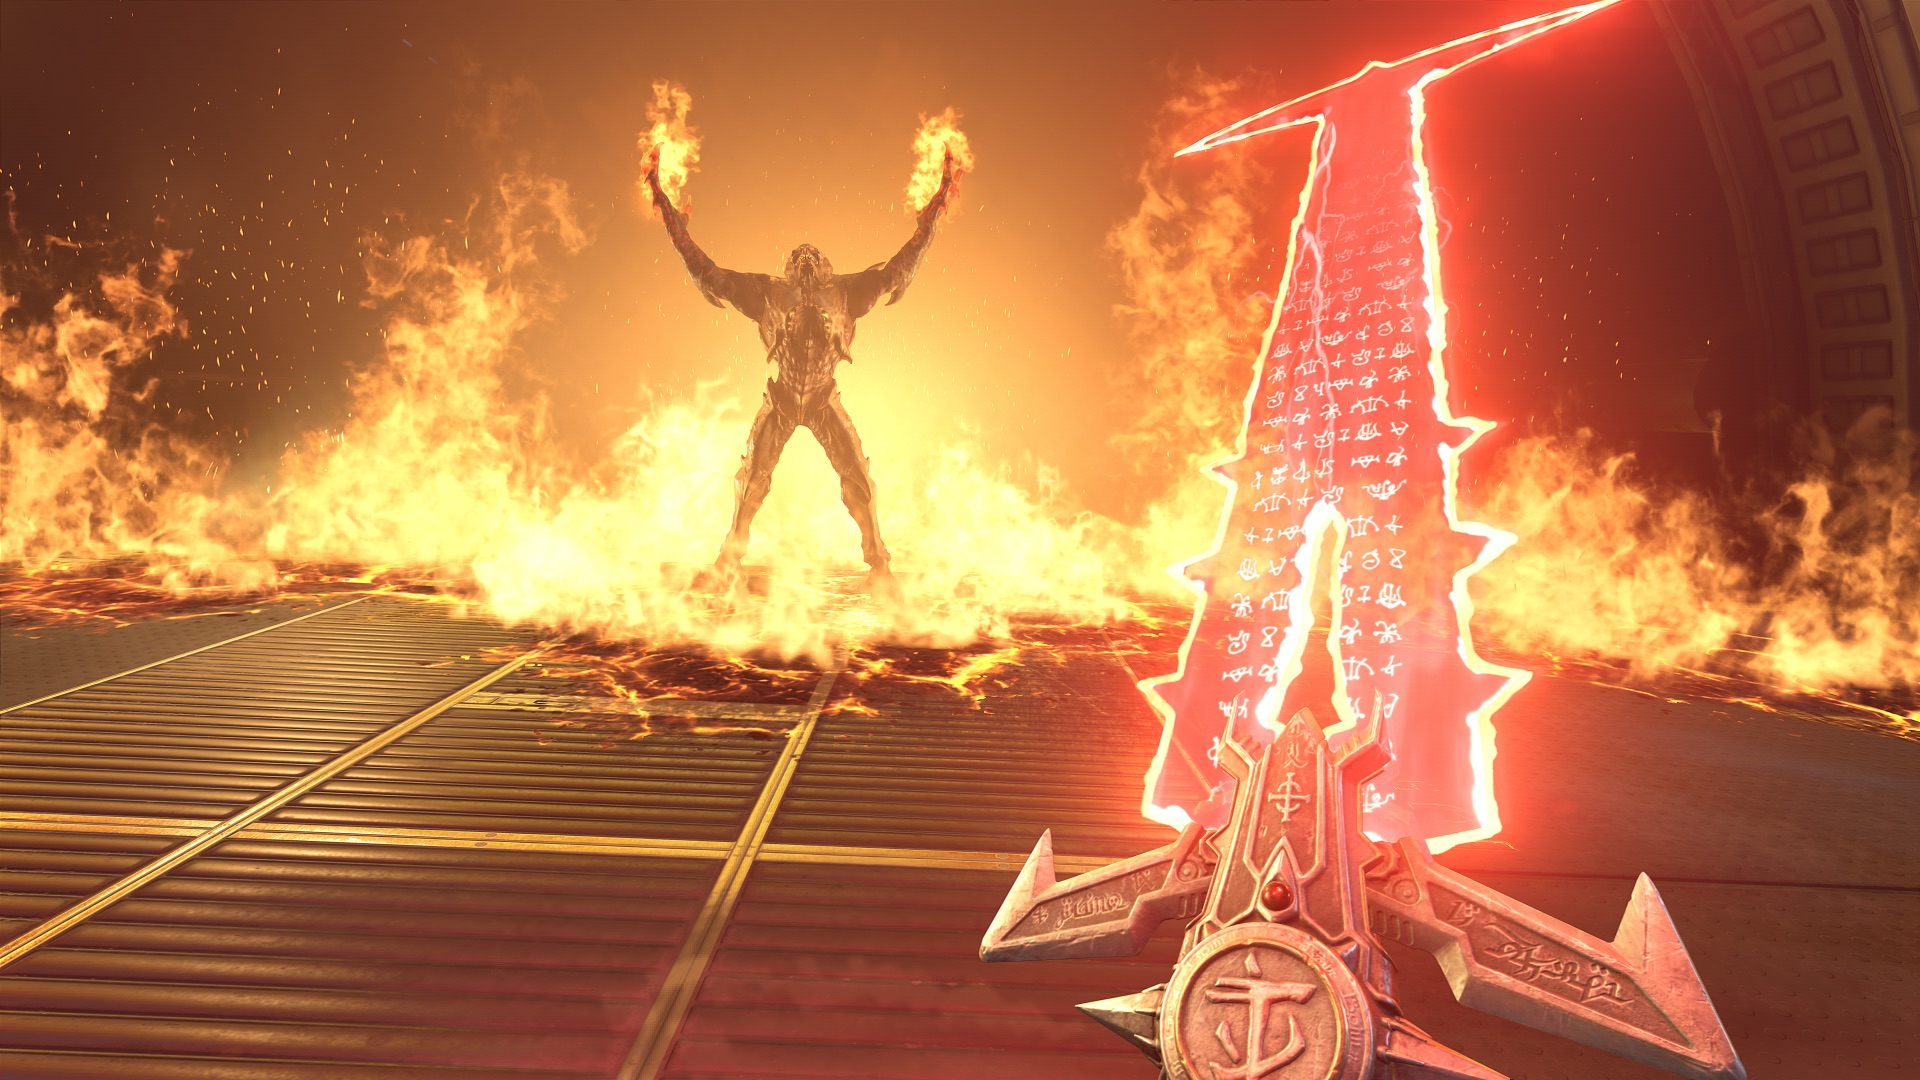 Doom Eternal Original Composer Will Not Be Working On Dlc